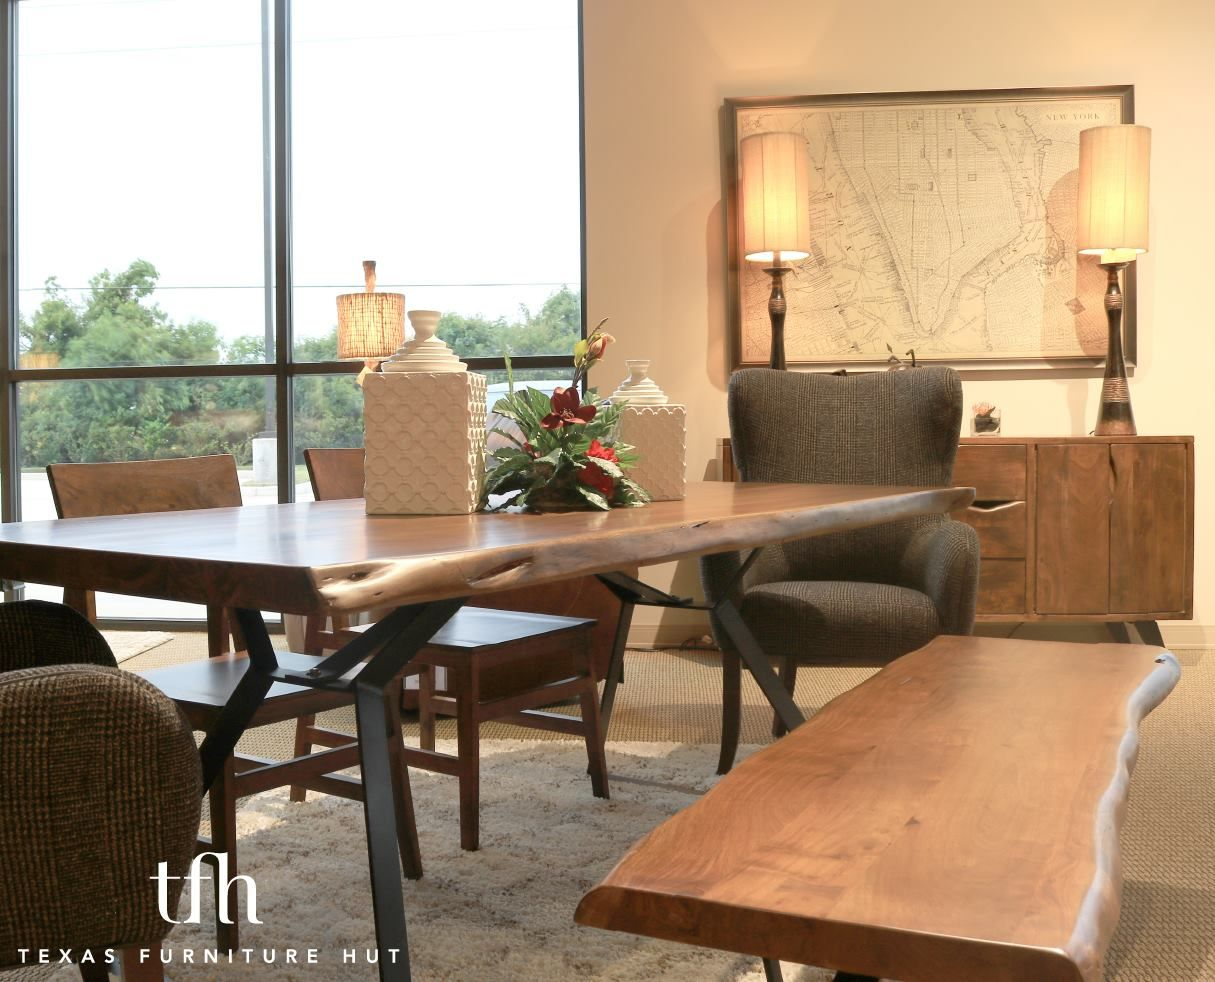 Where Do You Want To Sit This London Loft Casual Dining Set By Home Trends Design Includes Luxury Modern Furniture Luxury Furniture Stores Luxury Furniture